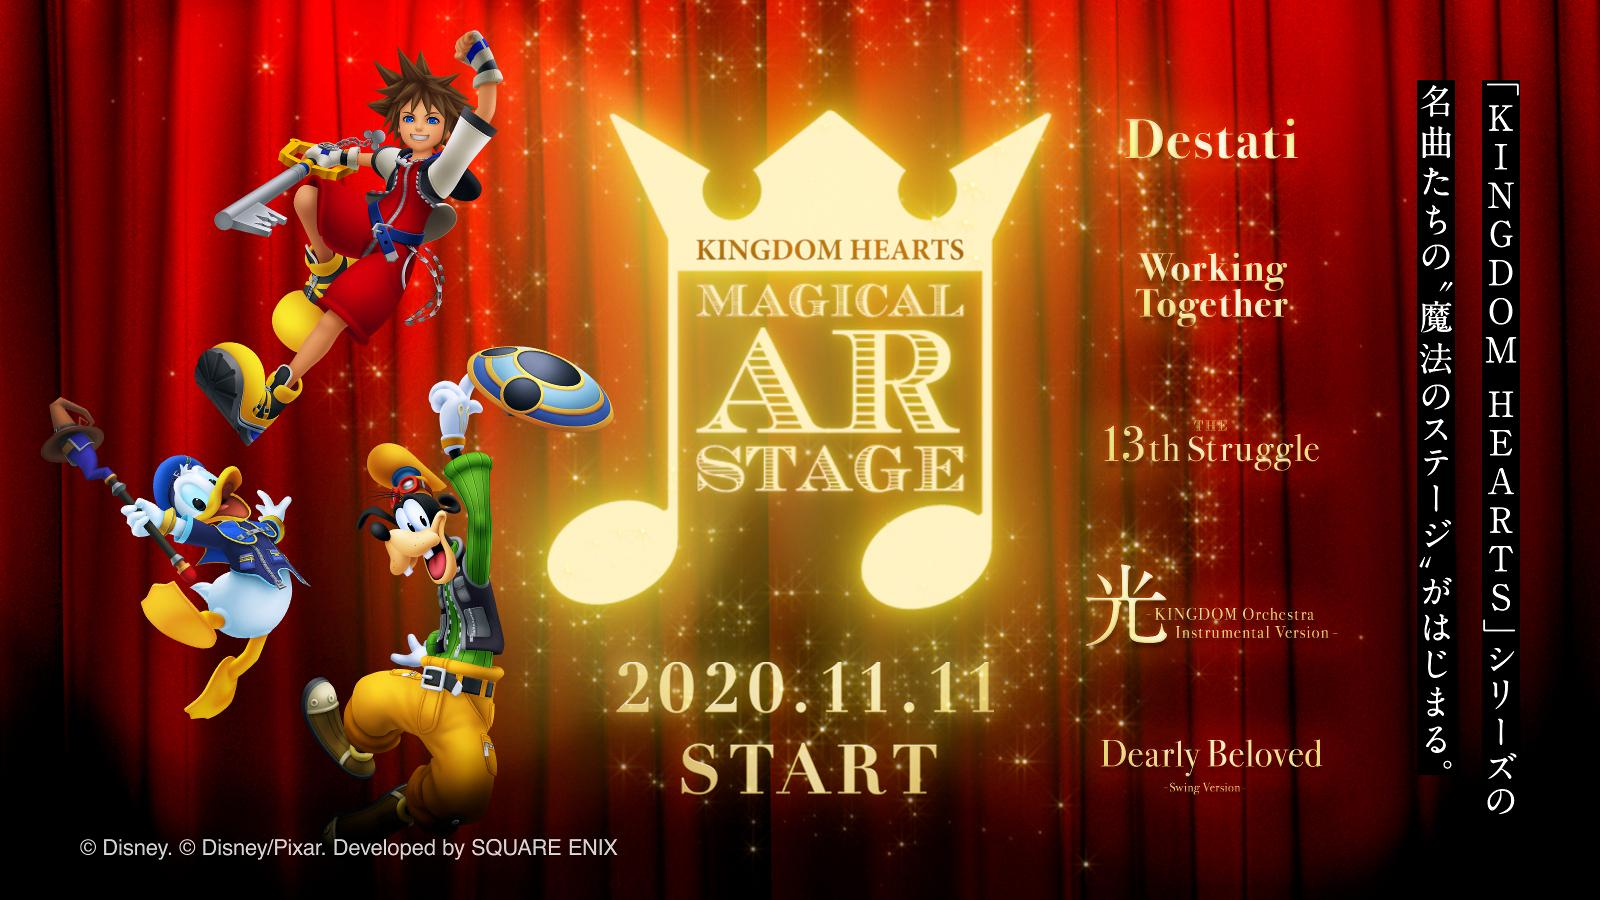 Kingdom Hearts Magical AR Stage Website